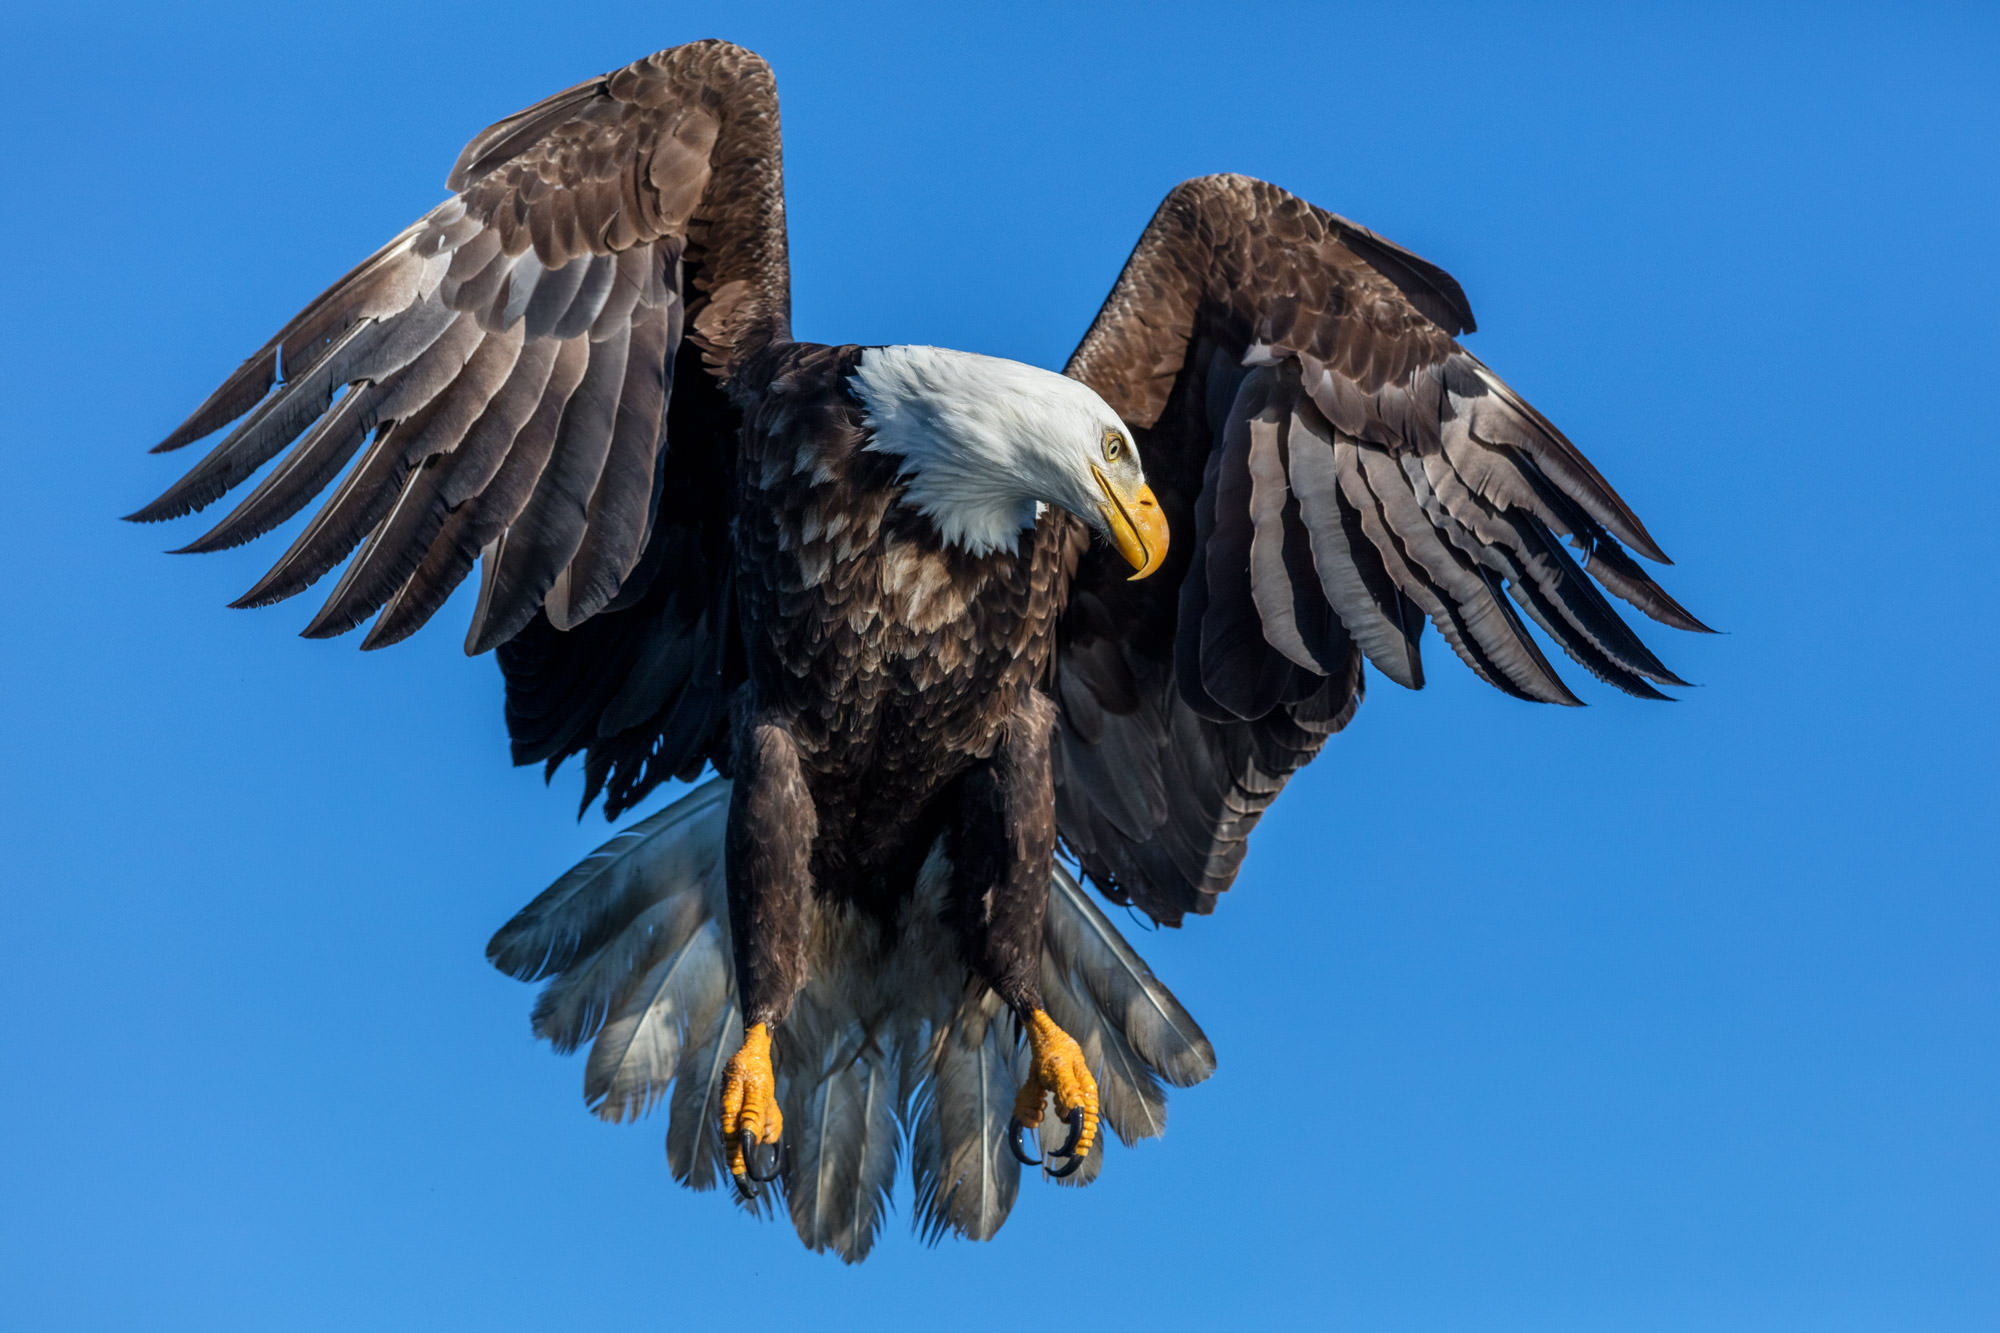 Eagle, Bald Eagle, flight, limited edition, photograph, fine art, wildlife, photo